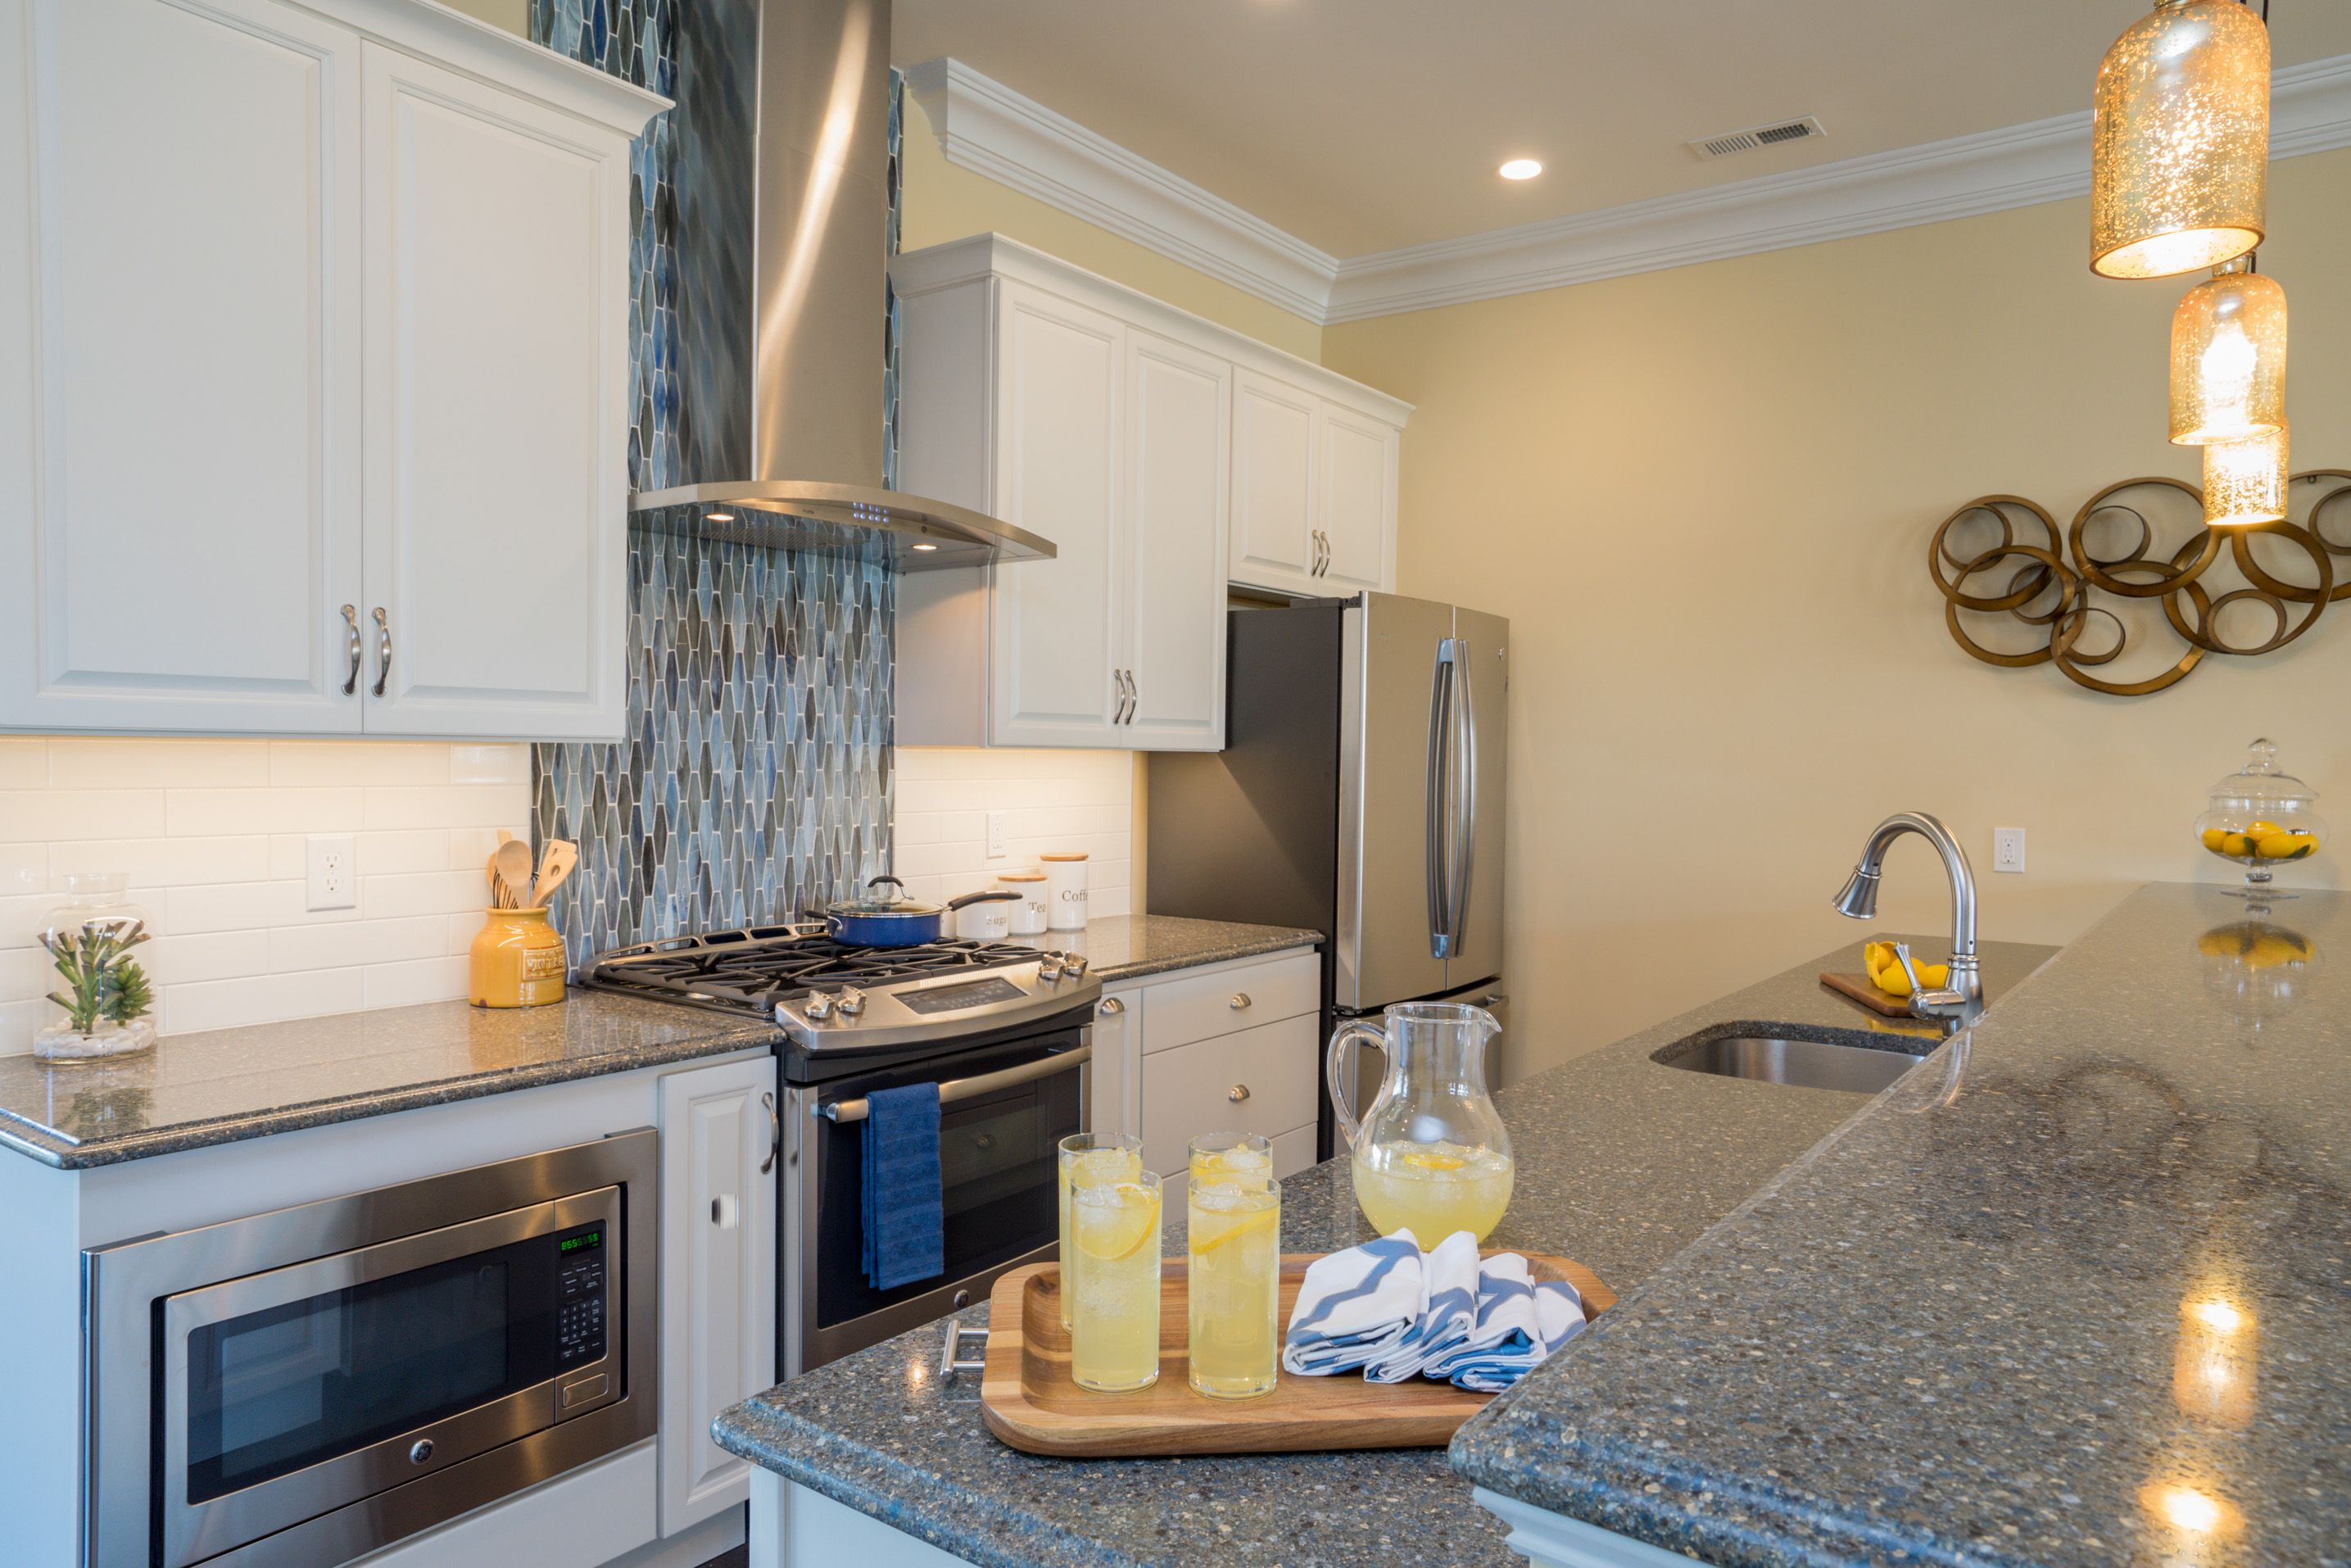 Kitchen featured in the Gianna By Judd Builders and Developers in Philadelphia, PA